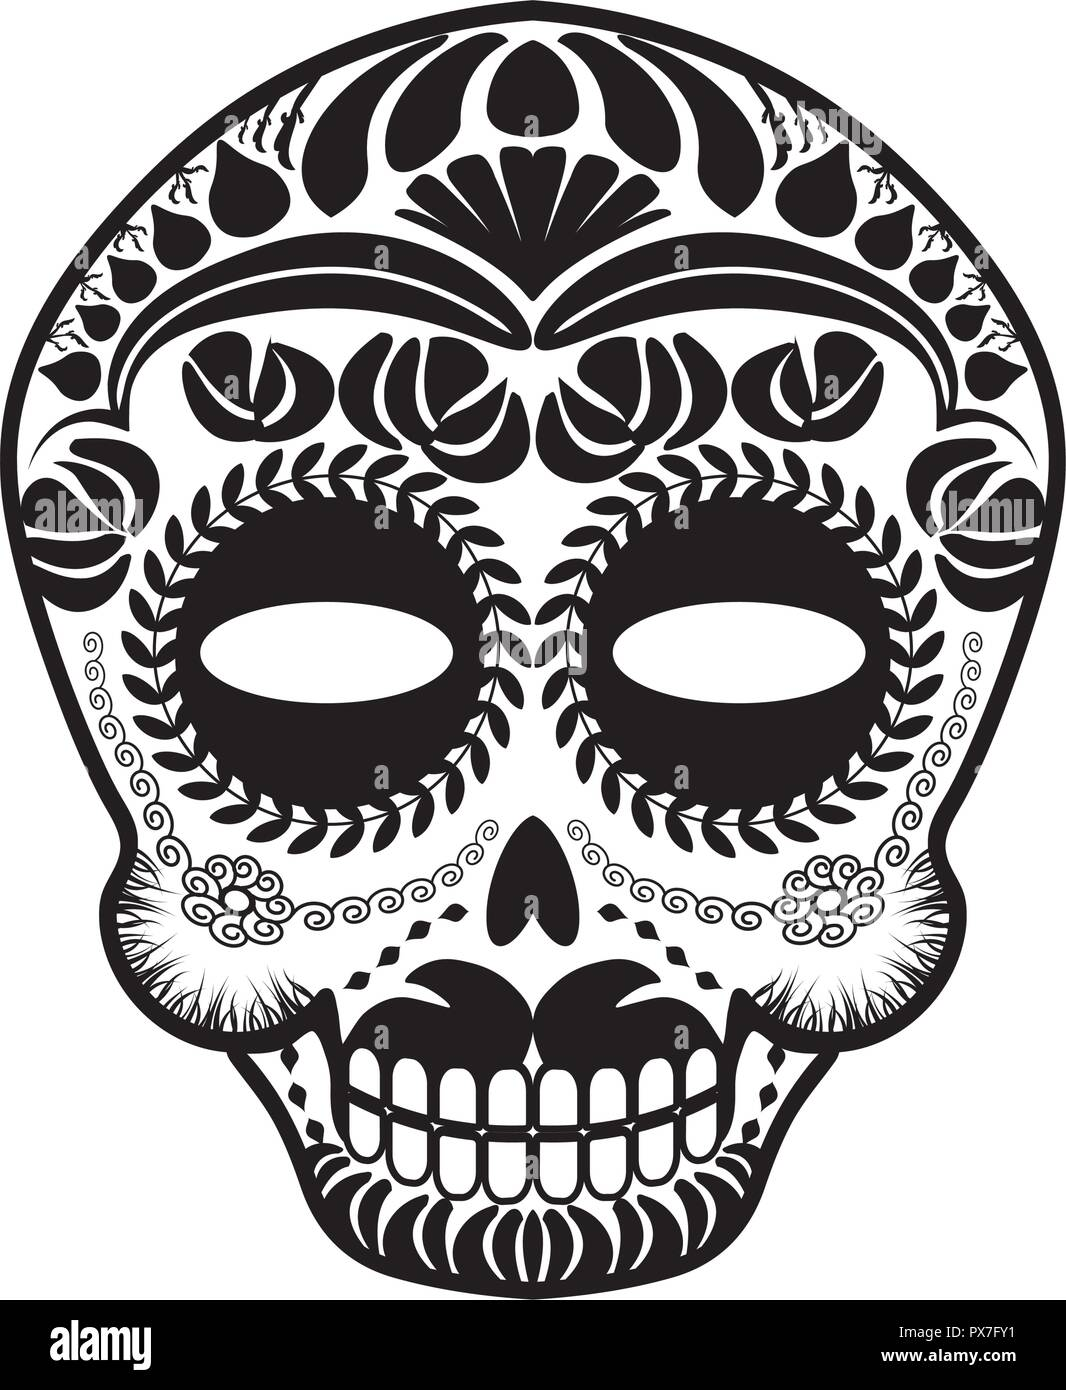 day of the dead skull mask template.html